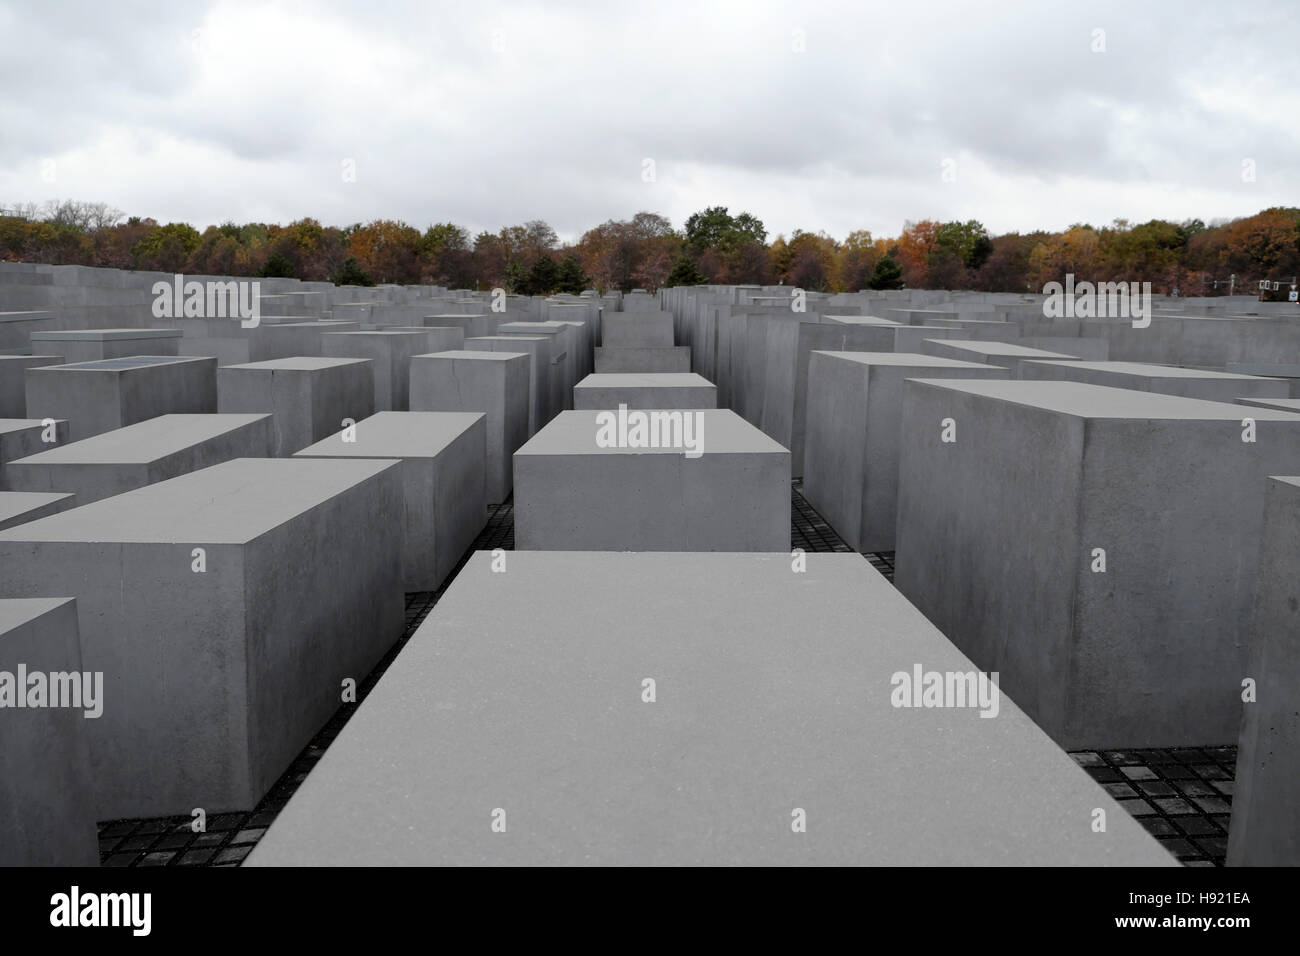 Jewish Memorial to the Murdered Jews of Europe in Berlin with a view of trees in autumn landscape Germany, Europe, - Stock Image